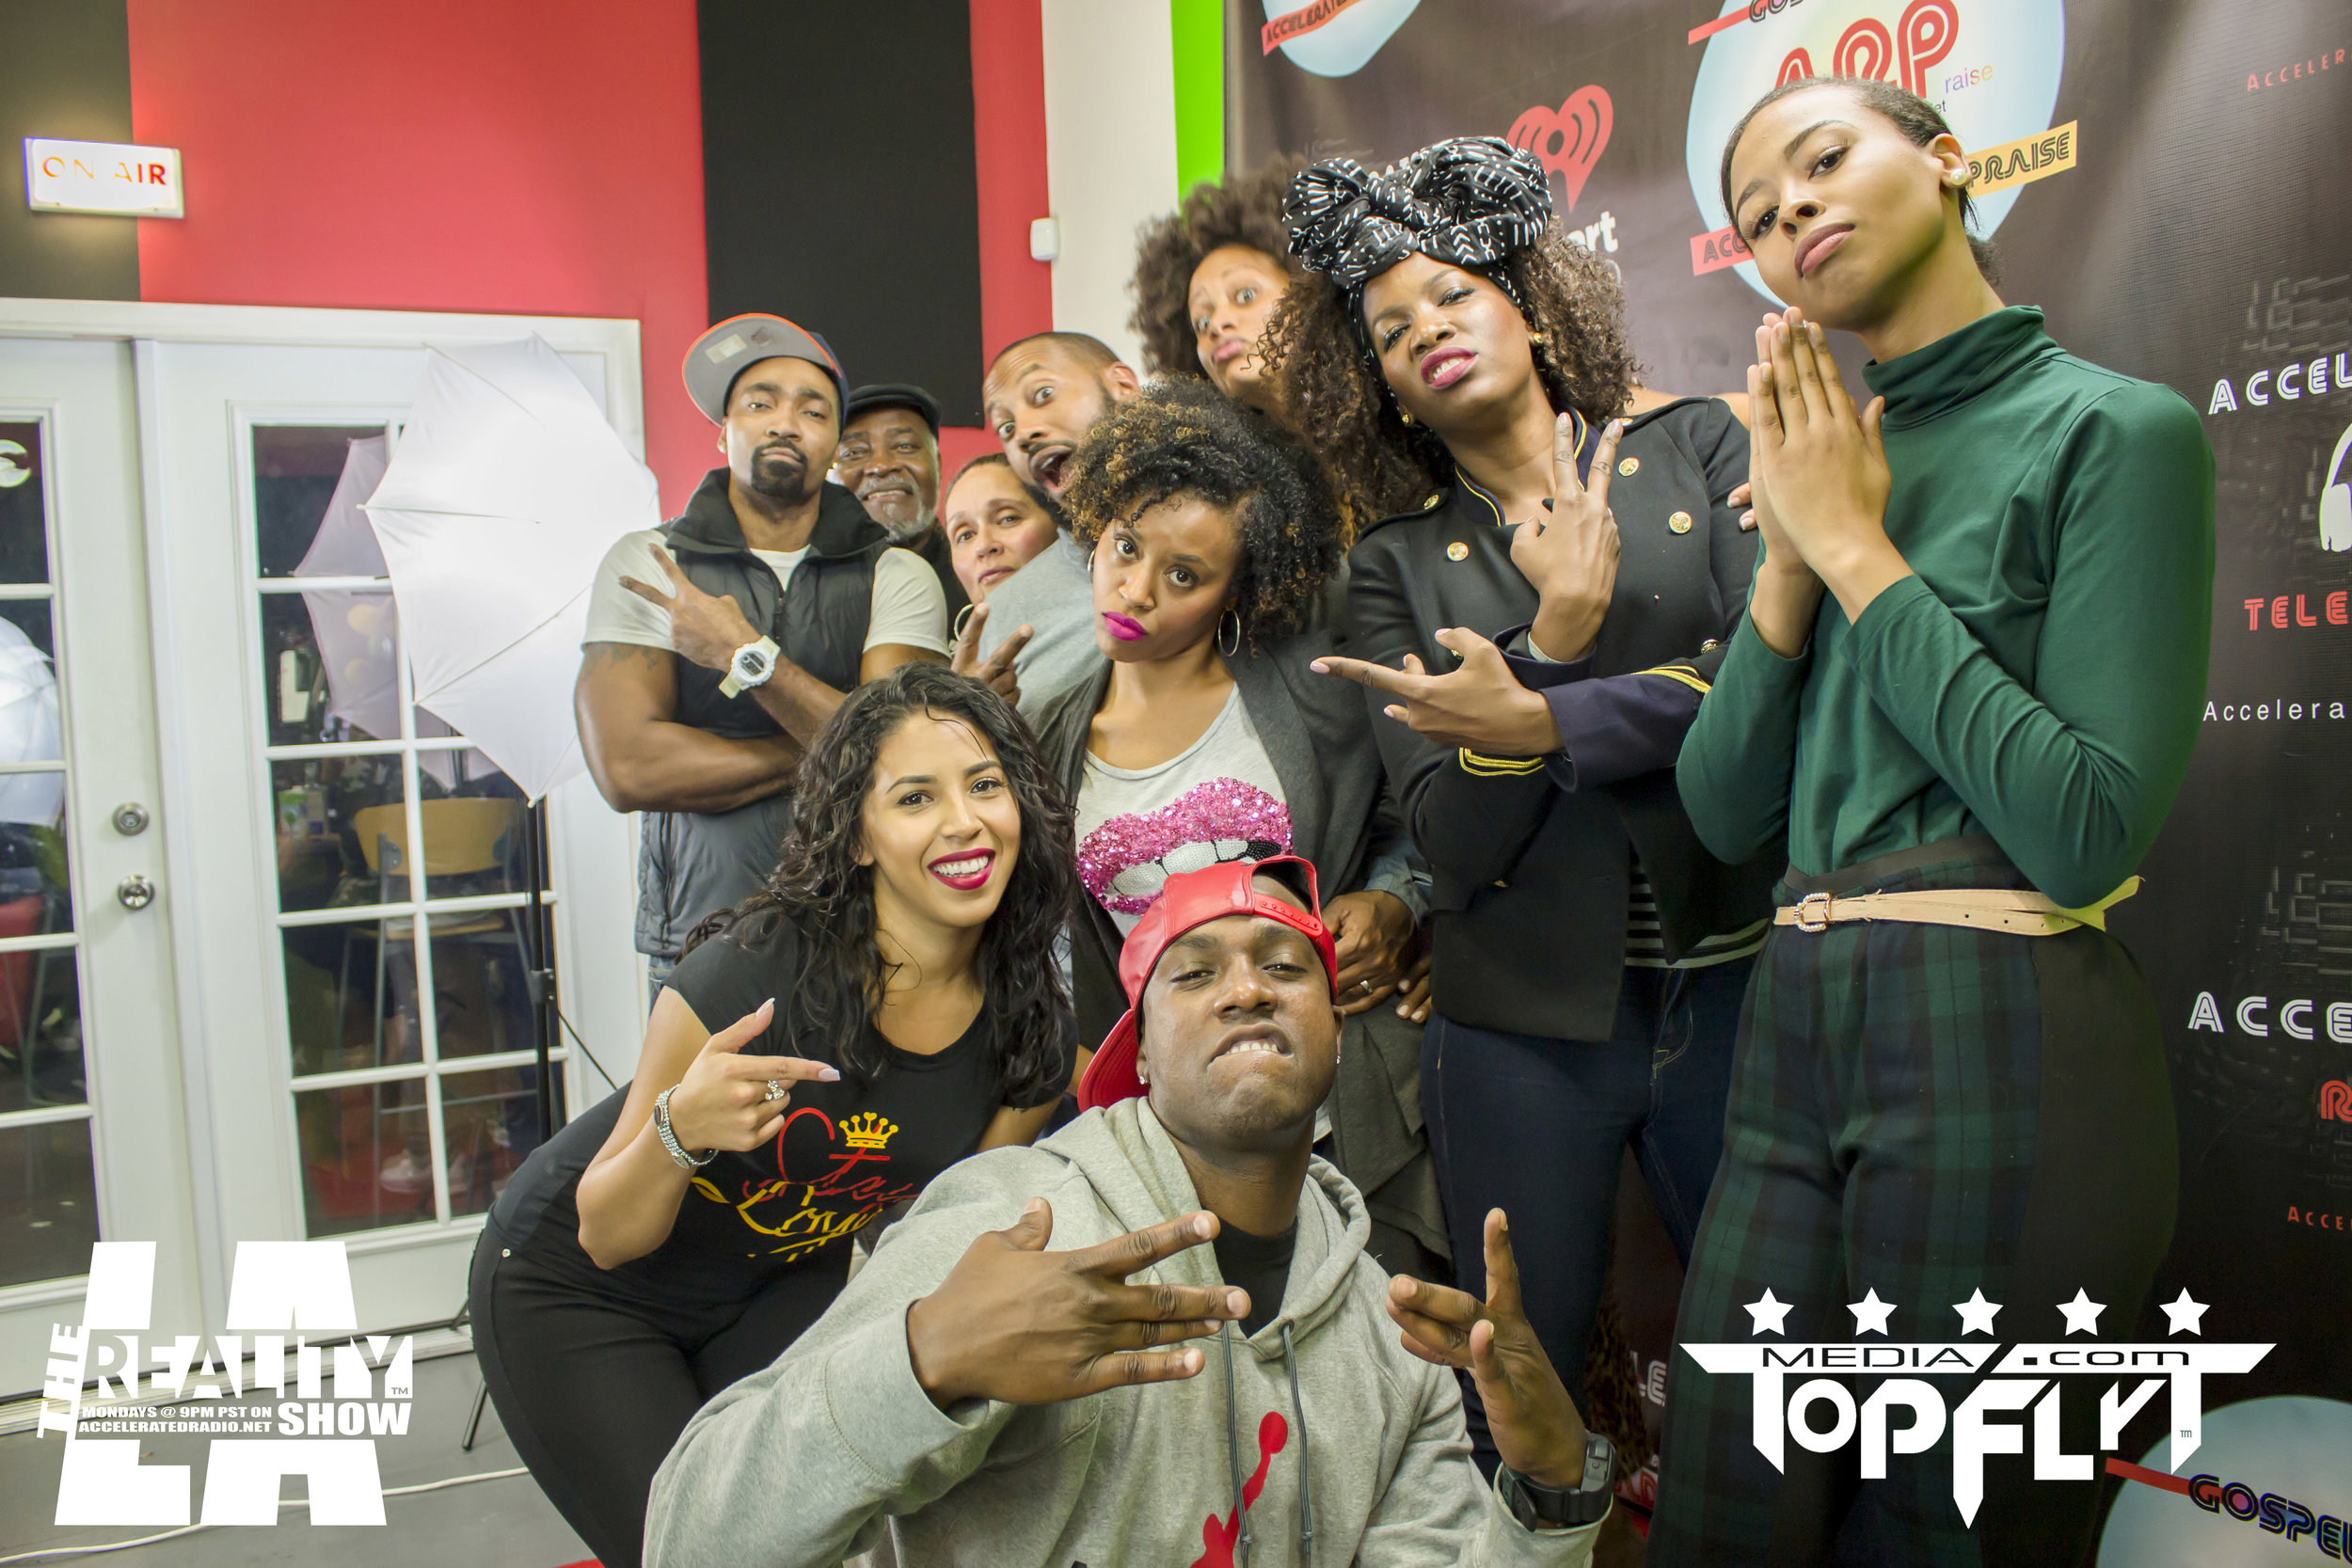 The Reality Show LA ft. Cast of FunnyMarriedStuff And Raquel Harris - 01-16-17_41.jpg